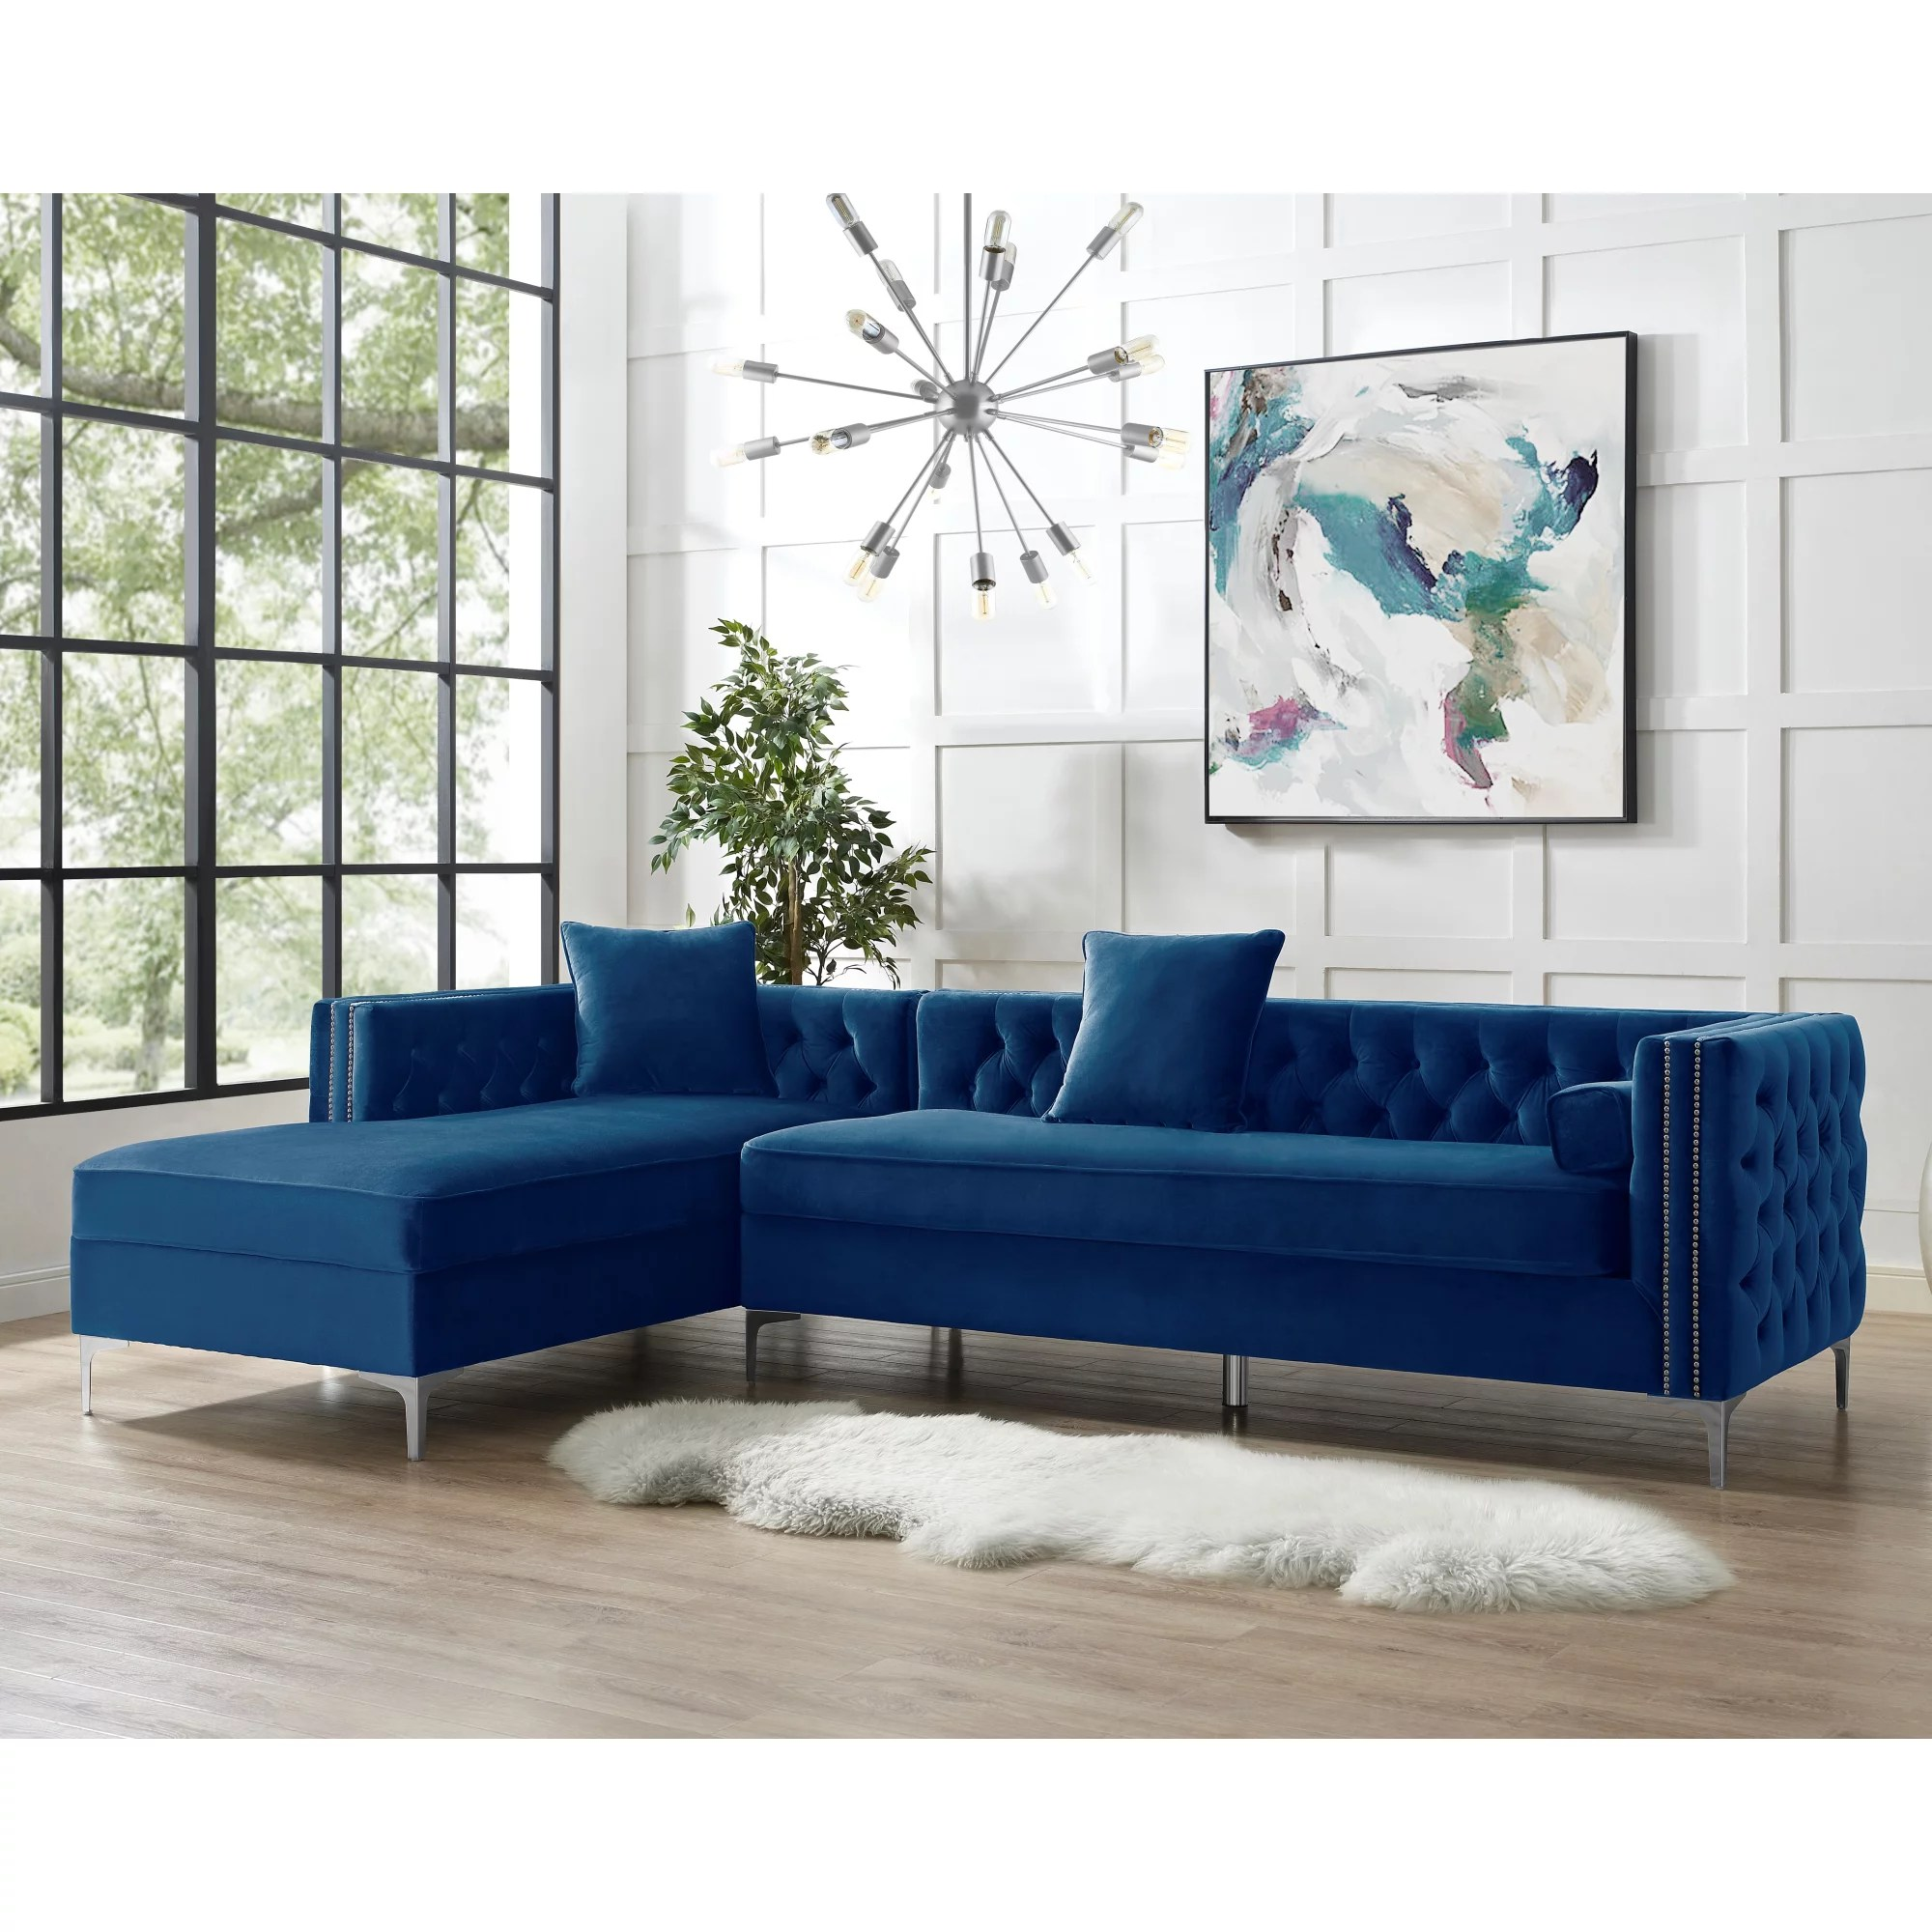 inspired home sania velvet chaise sectional sofa 115 left facing button tufted nailhead trim navy